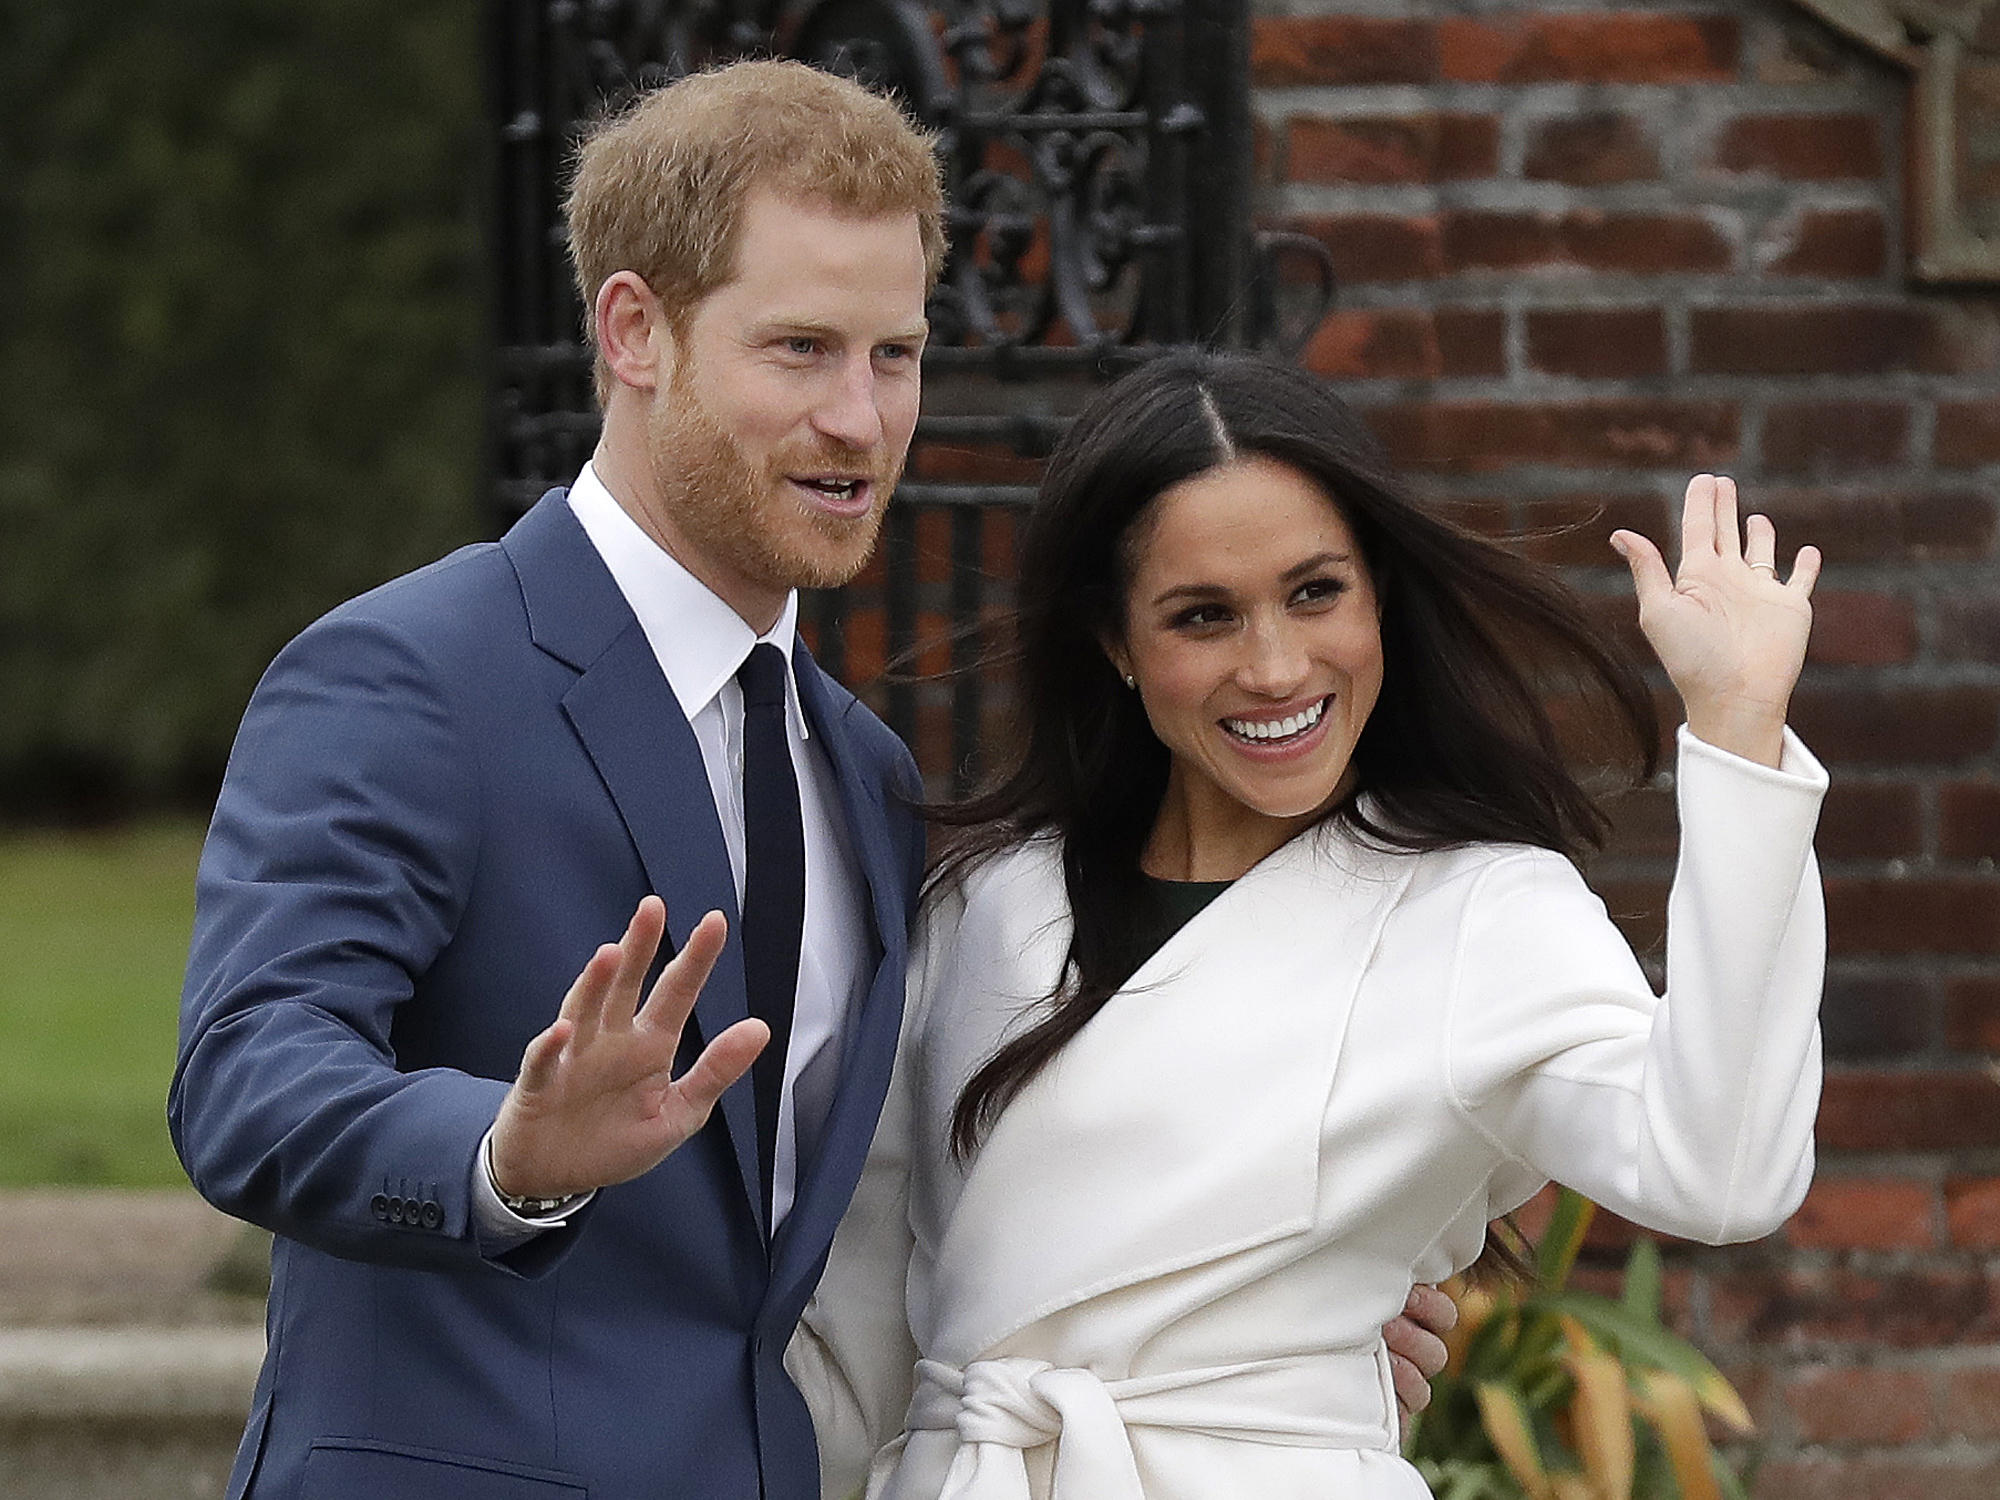 Meghan Markle Says She's Leaving Acting To Focus On Royal Duties